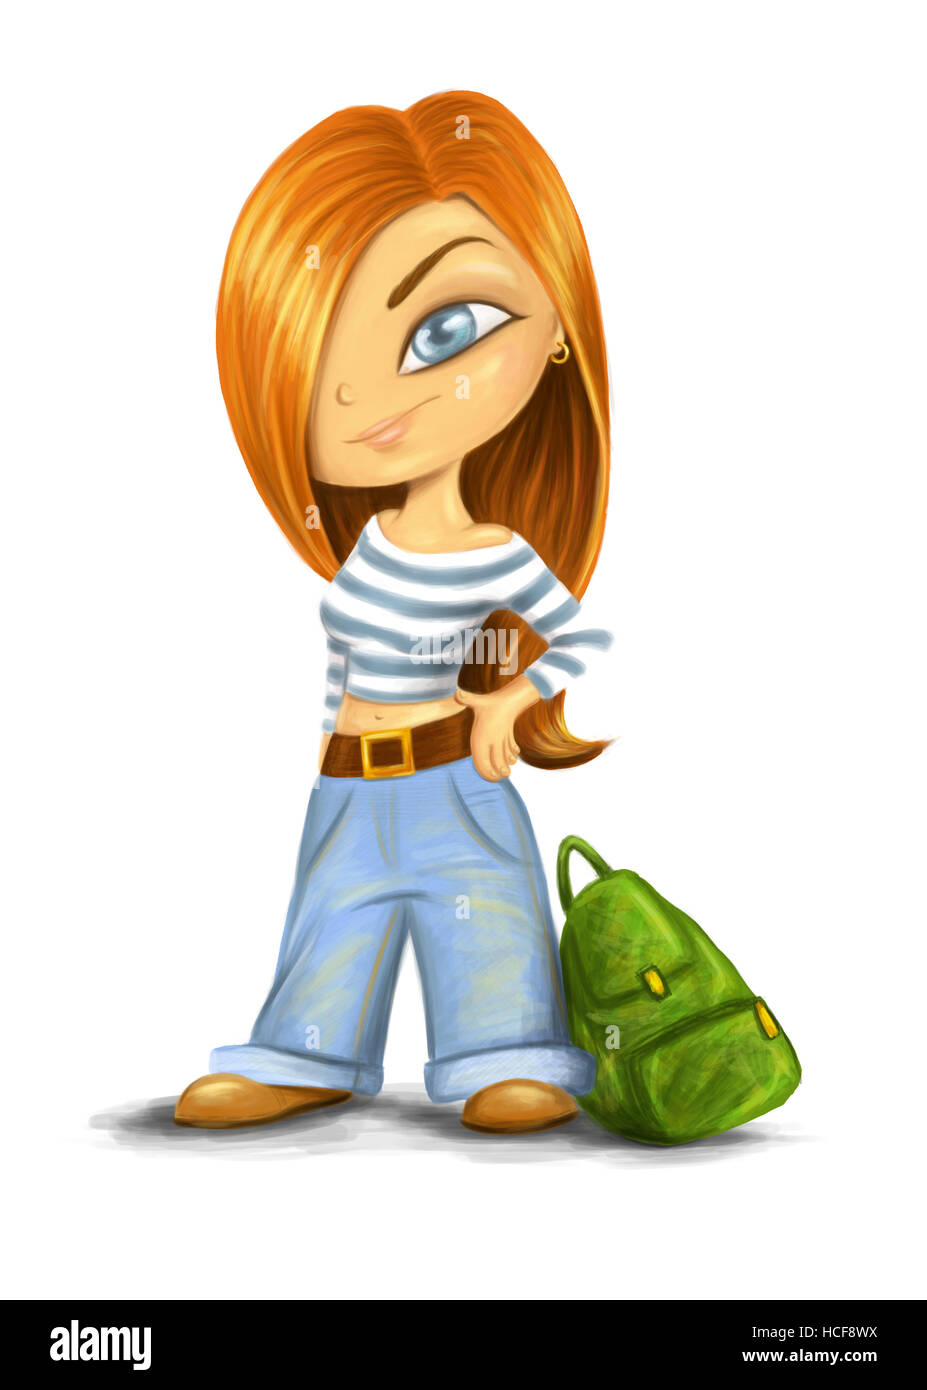 picture of a nice red-haired girl wearing jeans and a stripey top - Stock Image